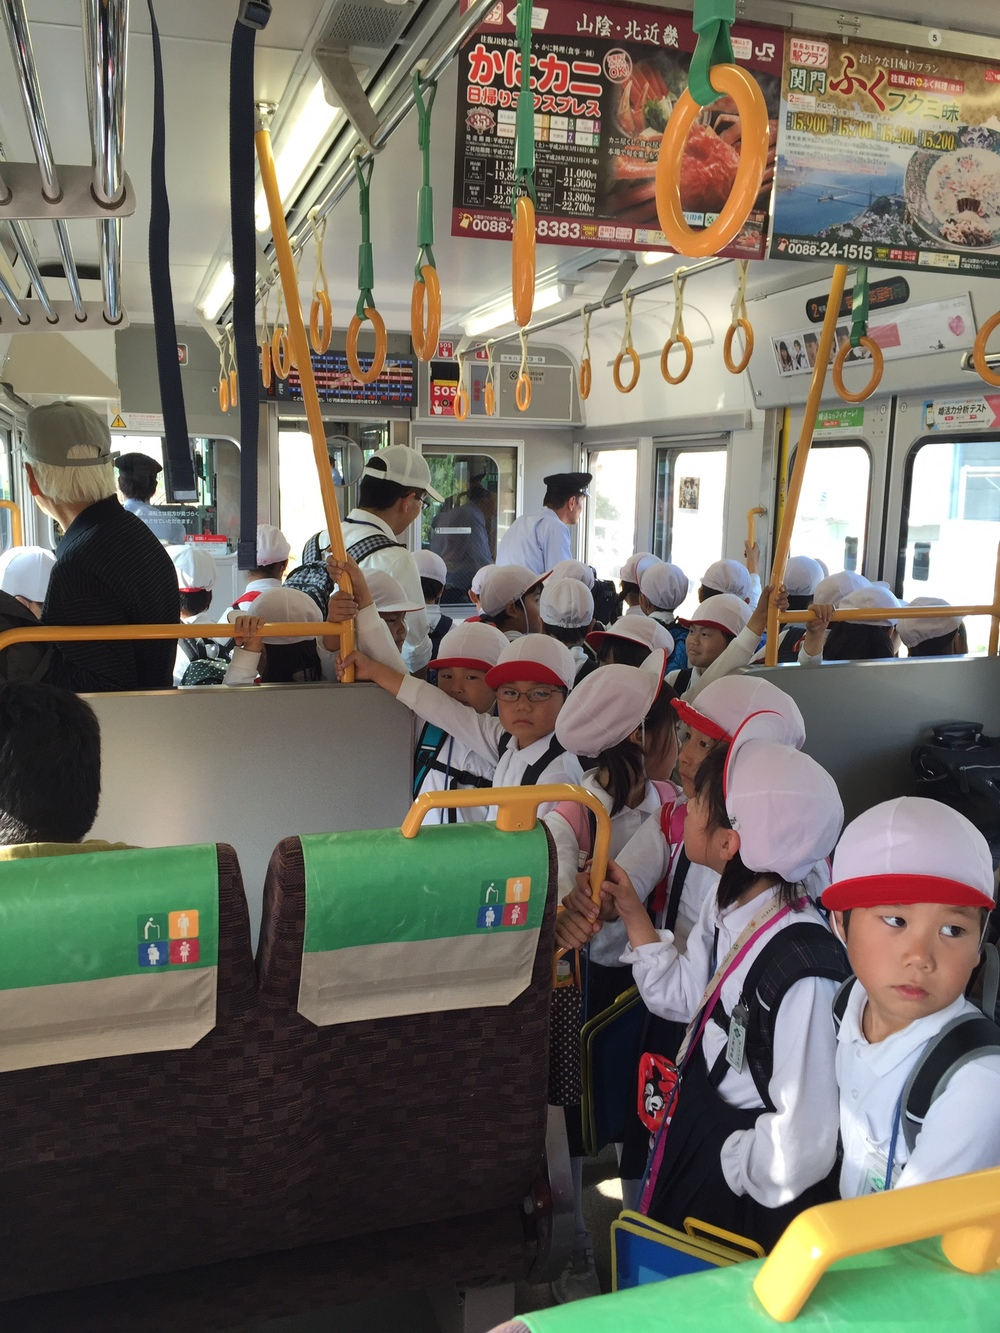 School trip on the train!